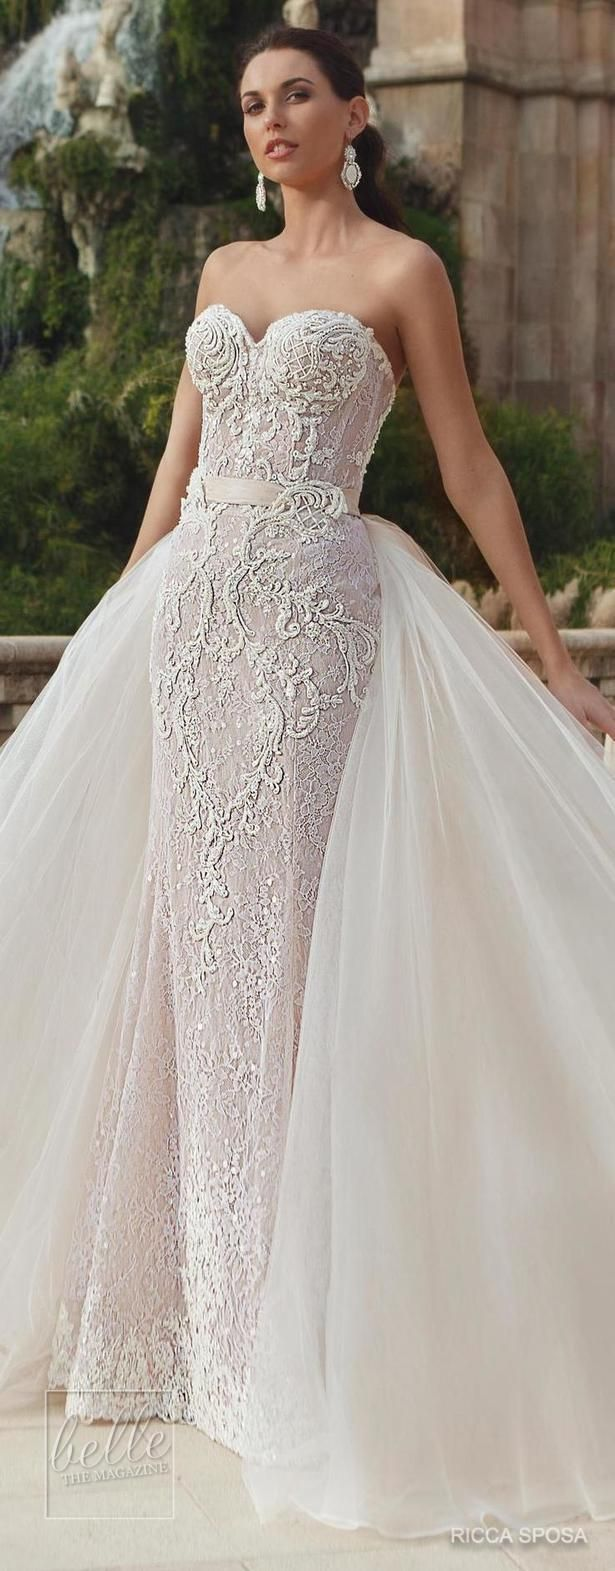 1429 best brautkleid images on Pinterest | Homecoming dresses straps ...